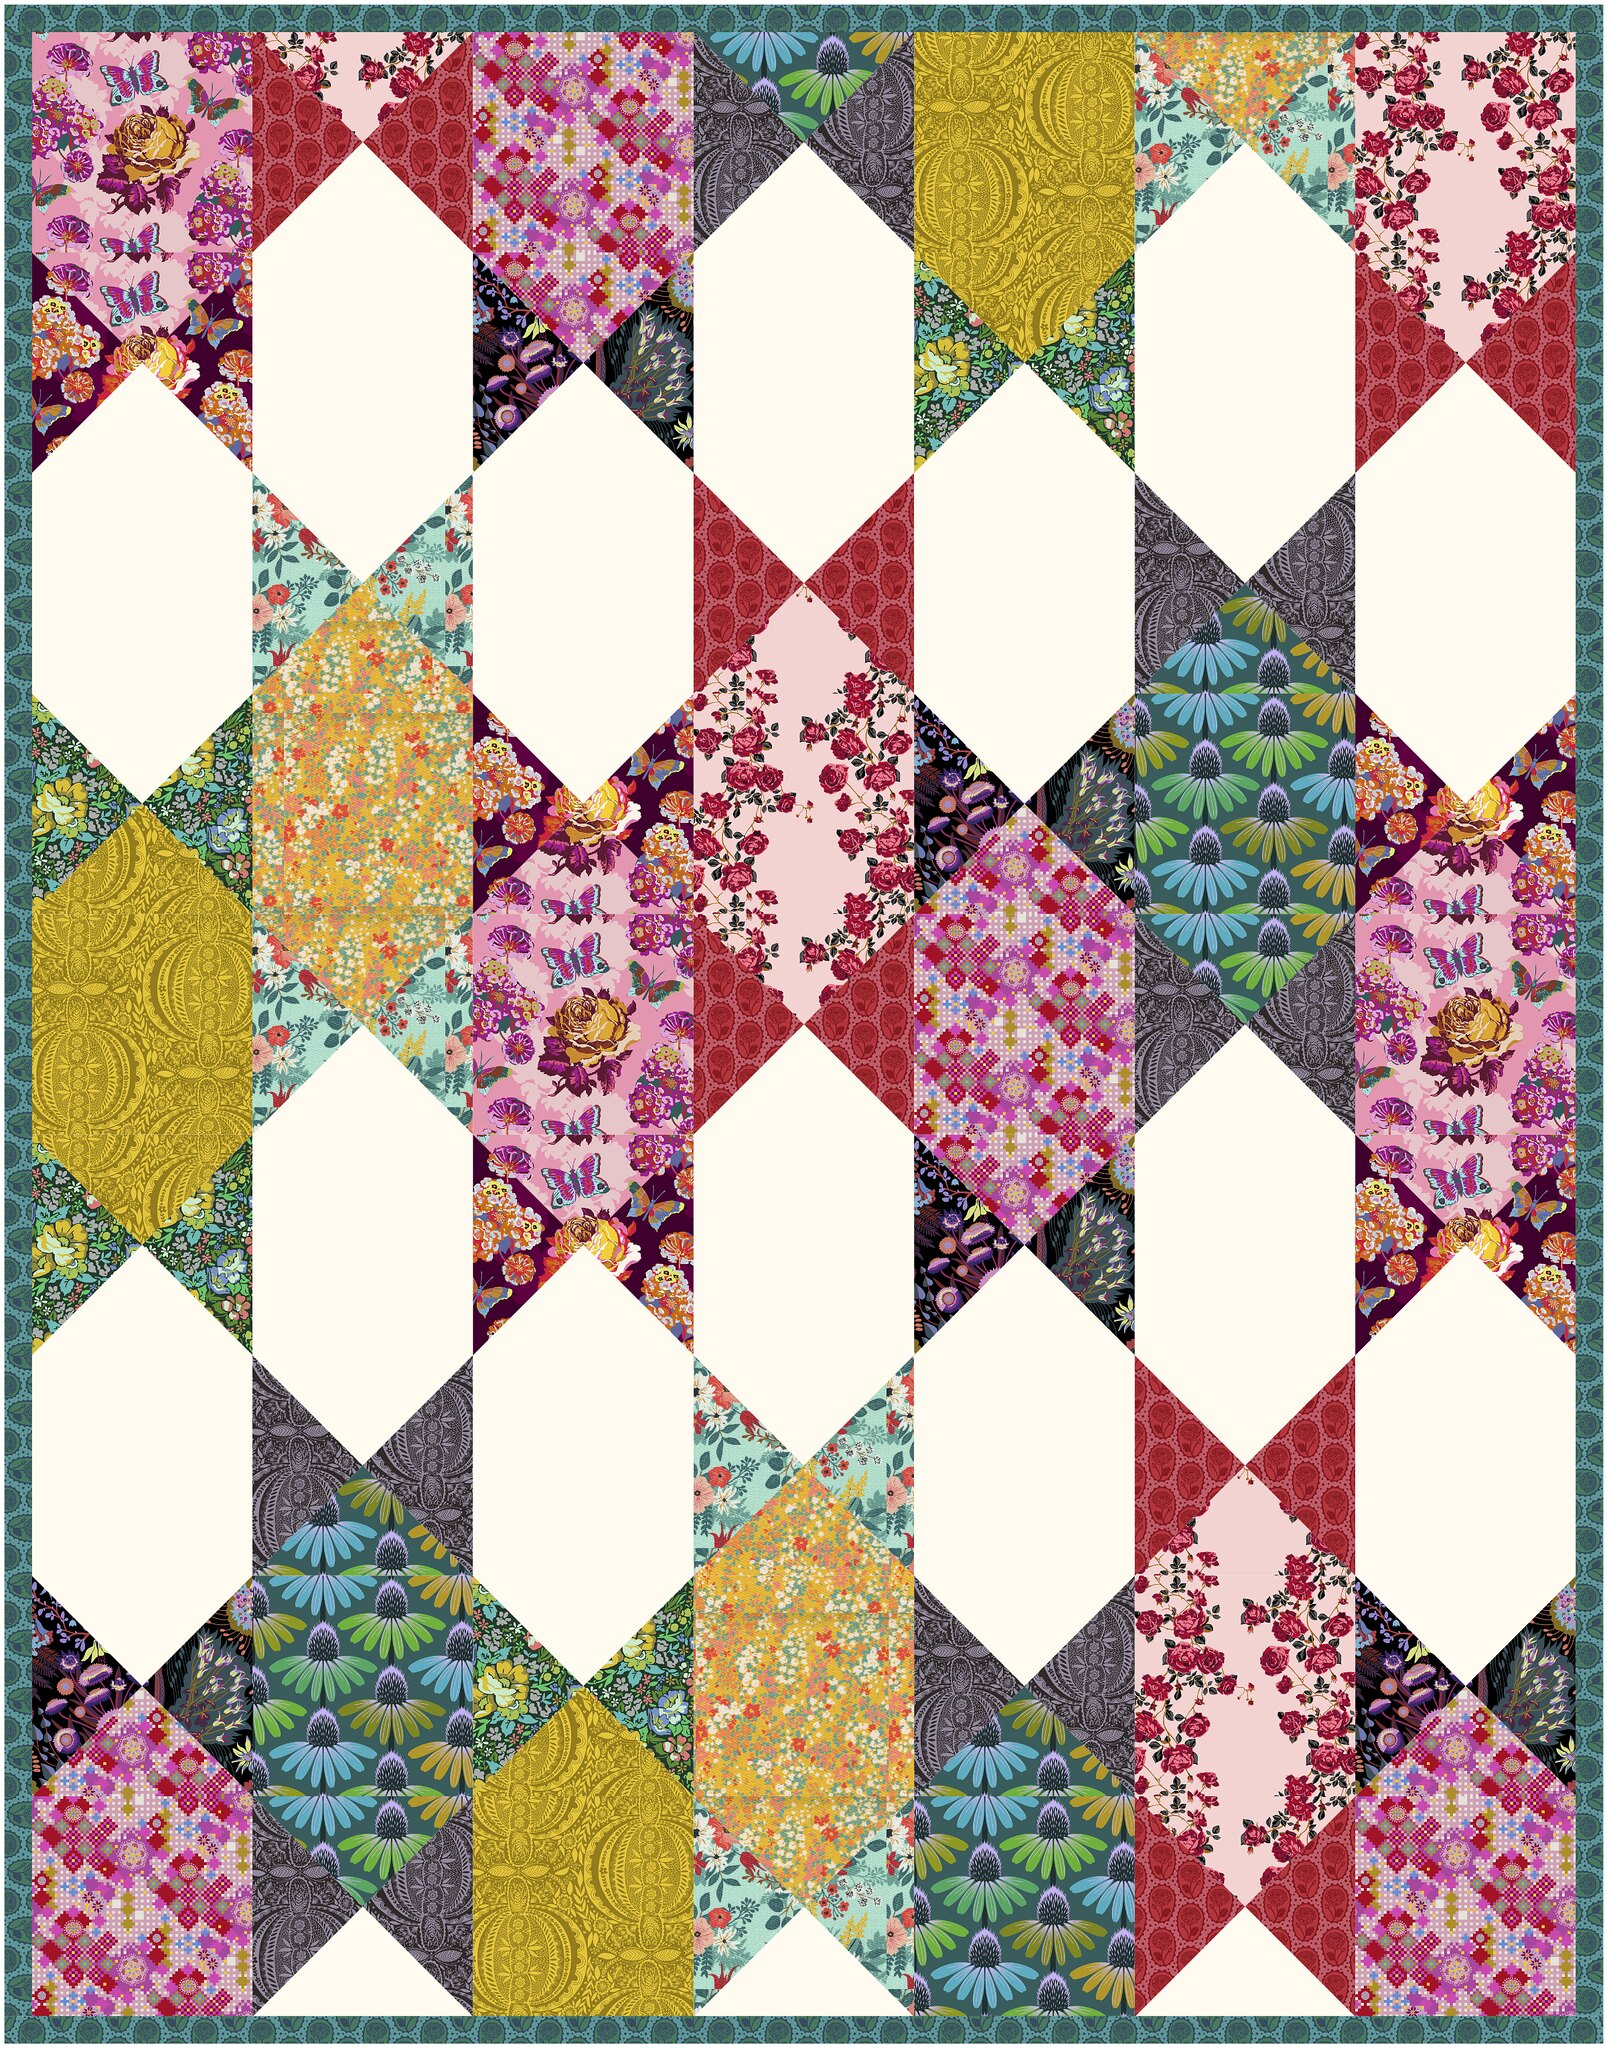 The Abigail Quilt in Love Always - Kitchen Table Quilting